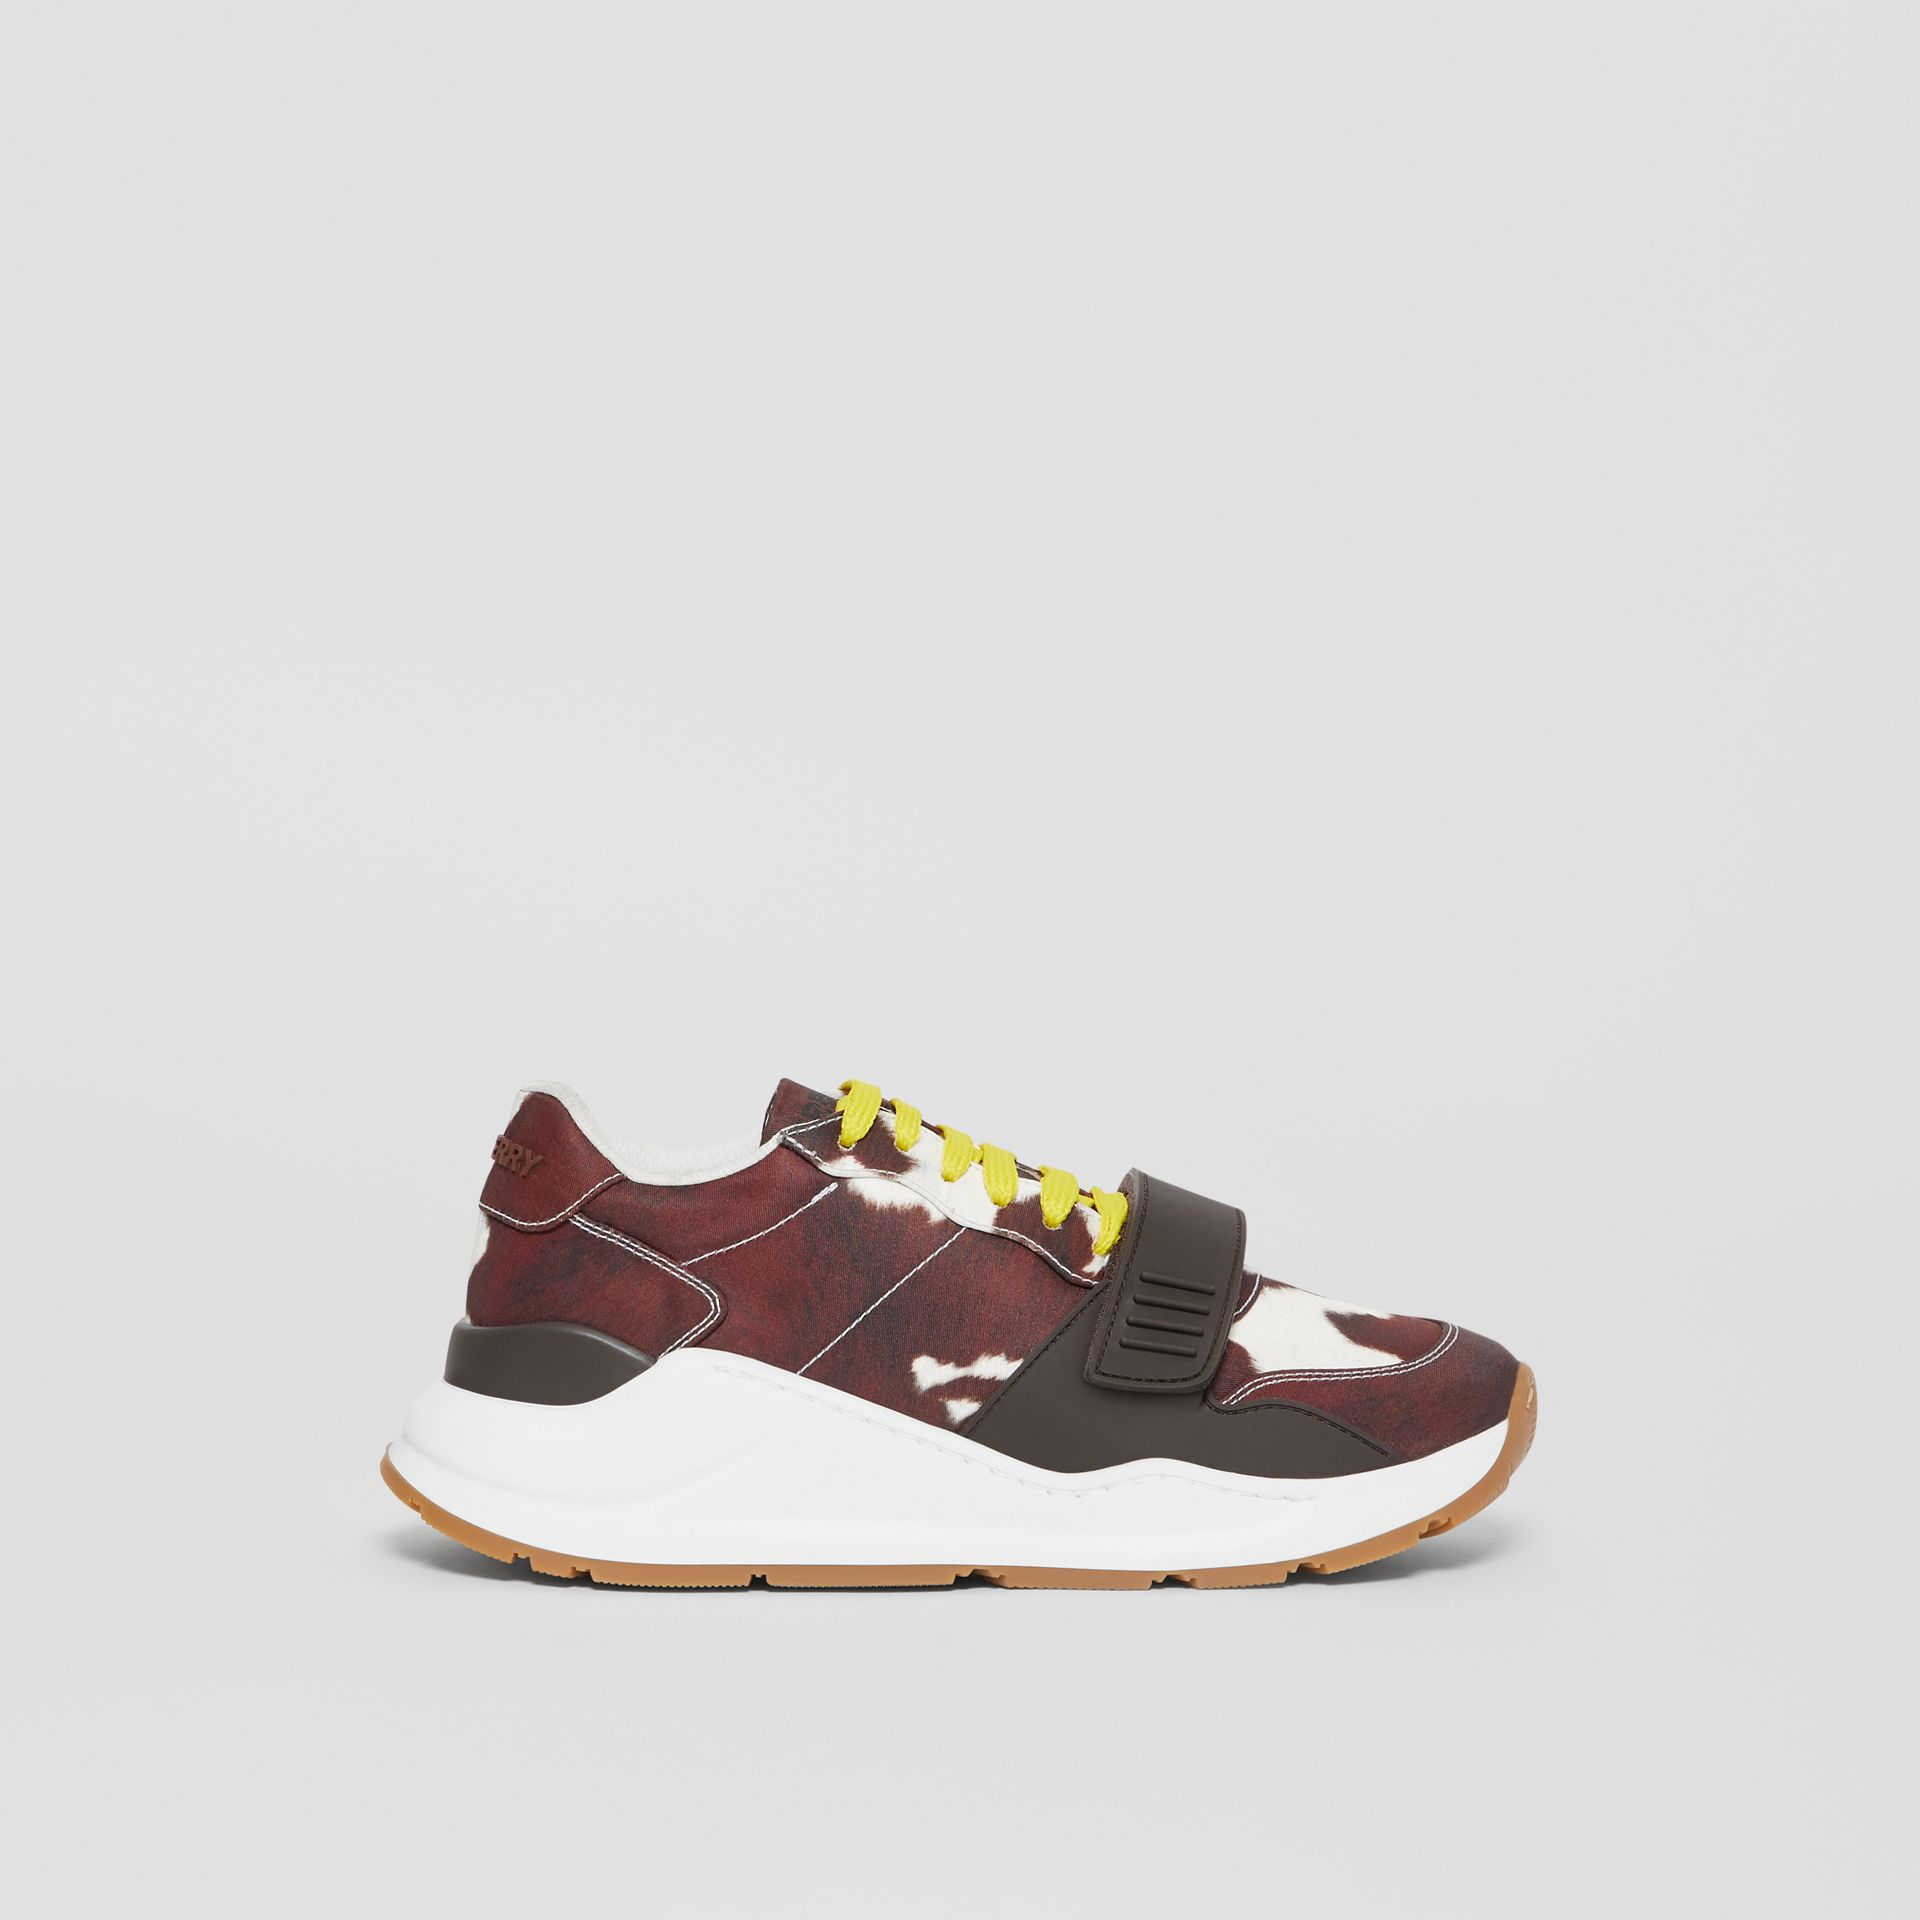 Cow Print Nylon Sneakers in Brown - Women | Burberry United States - gallery image 5